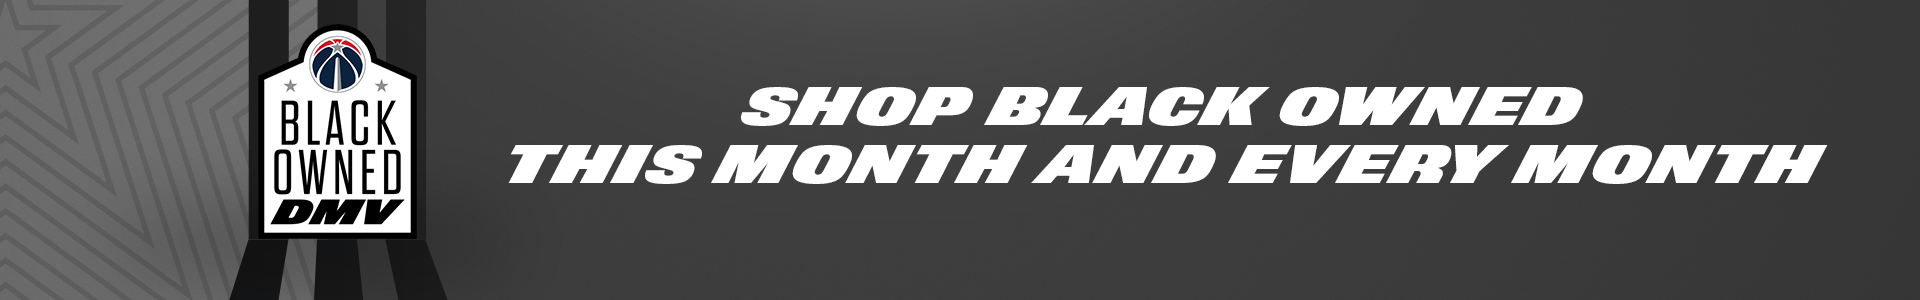 Shop Black Owned This Month and Every Month